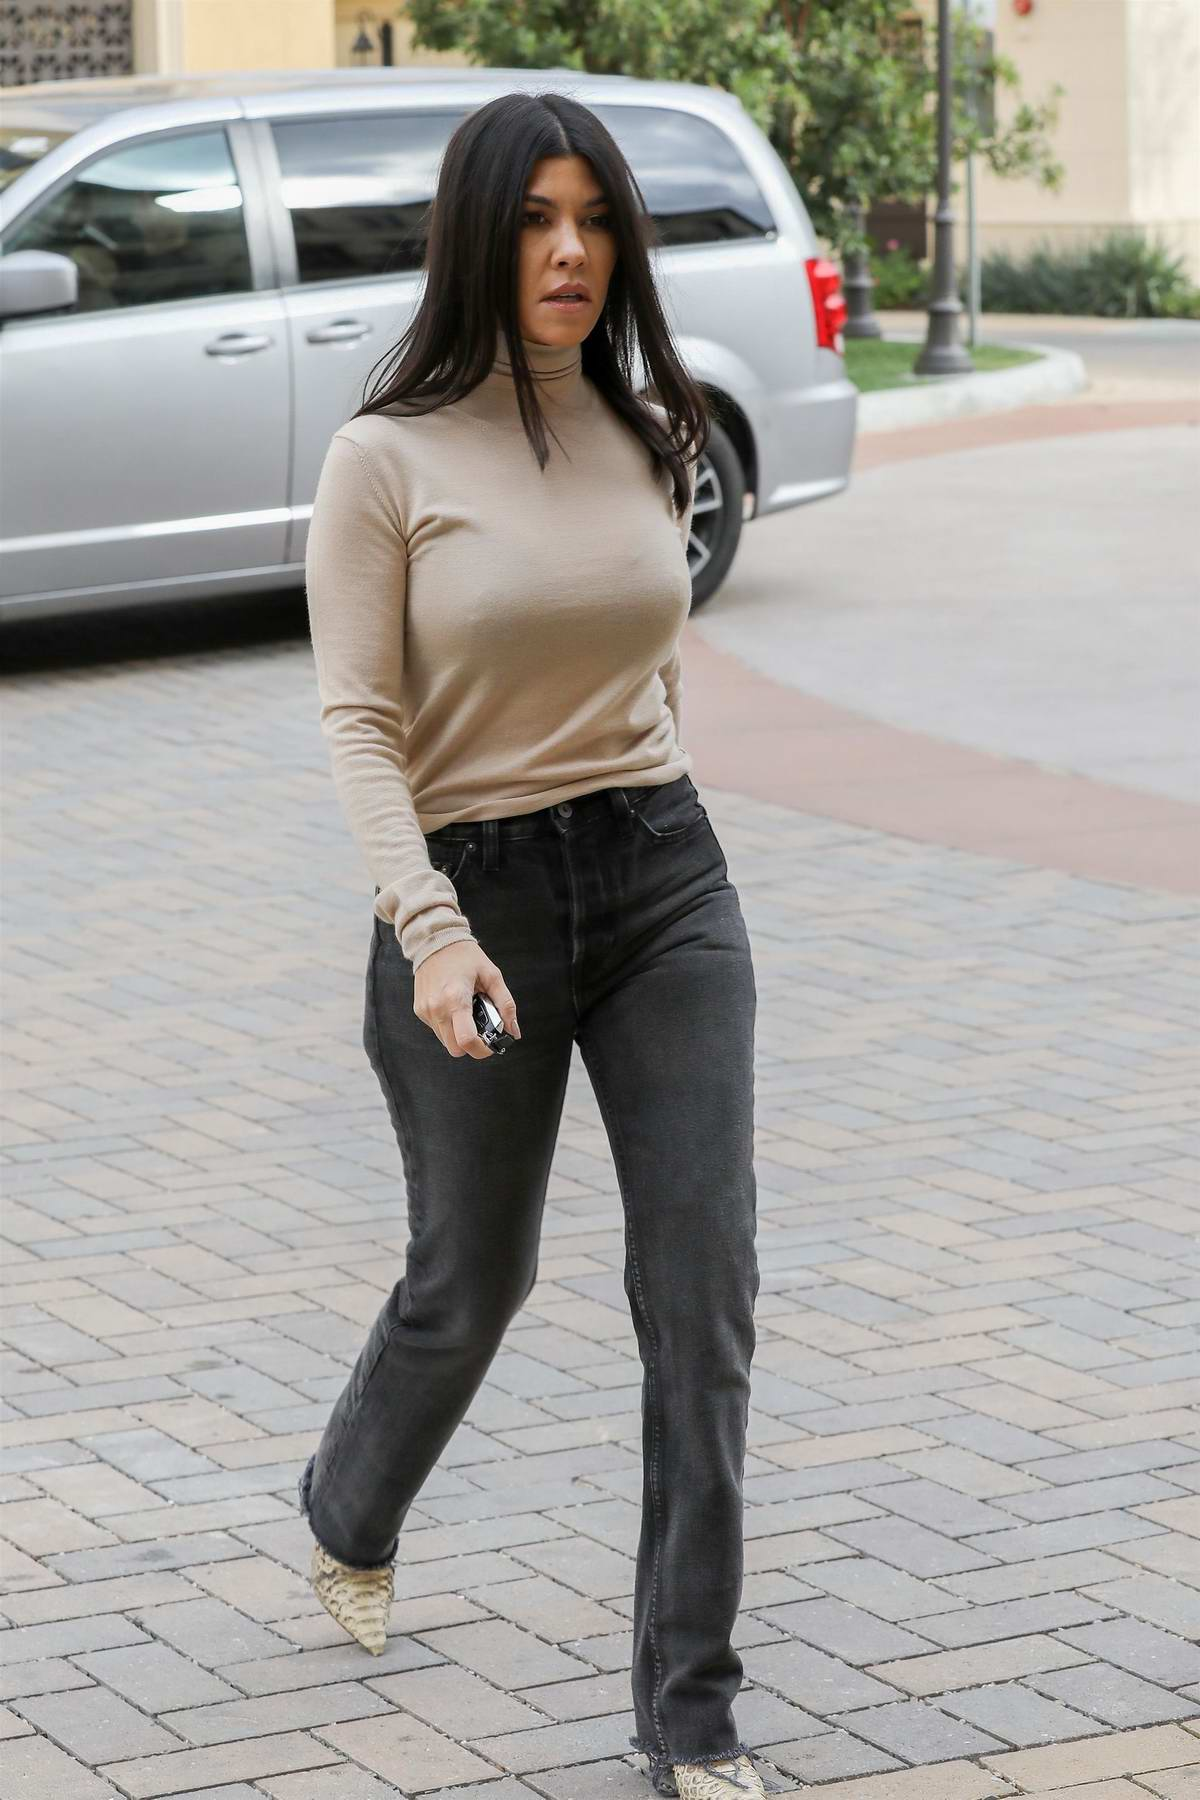 Kourtney Kardashian wore a beige top while stopping by at her grandmother's place in Calabasas, California